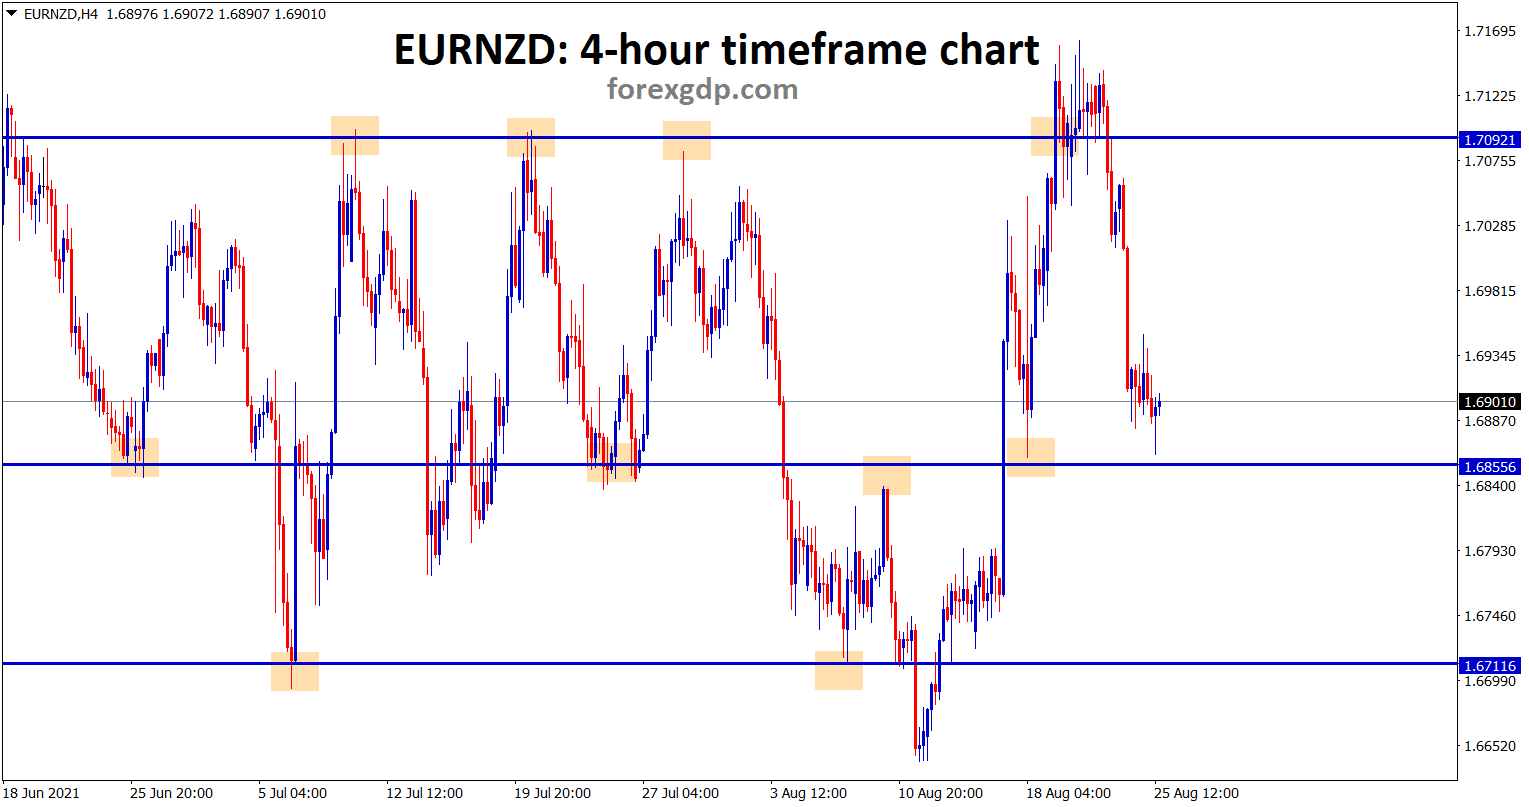 EURNZD bounces back from the minor support area currently its ranging between the SR levels